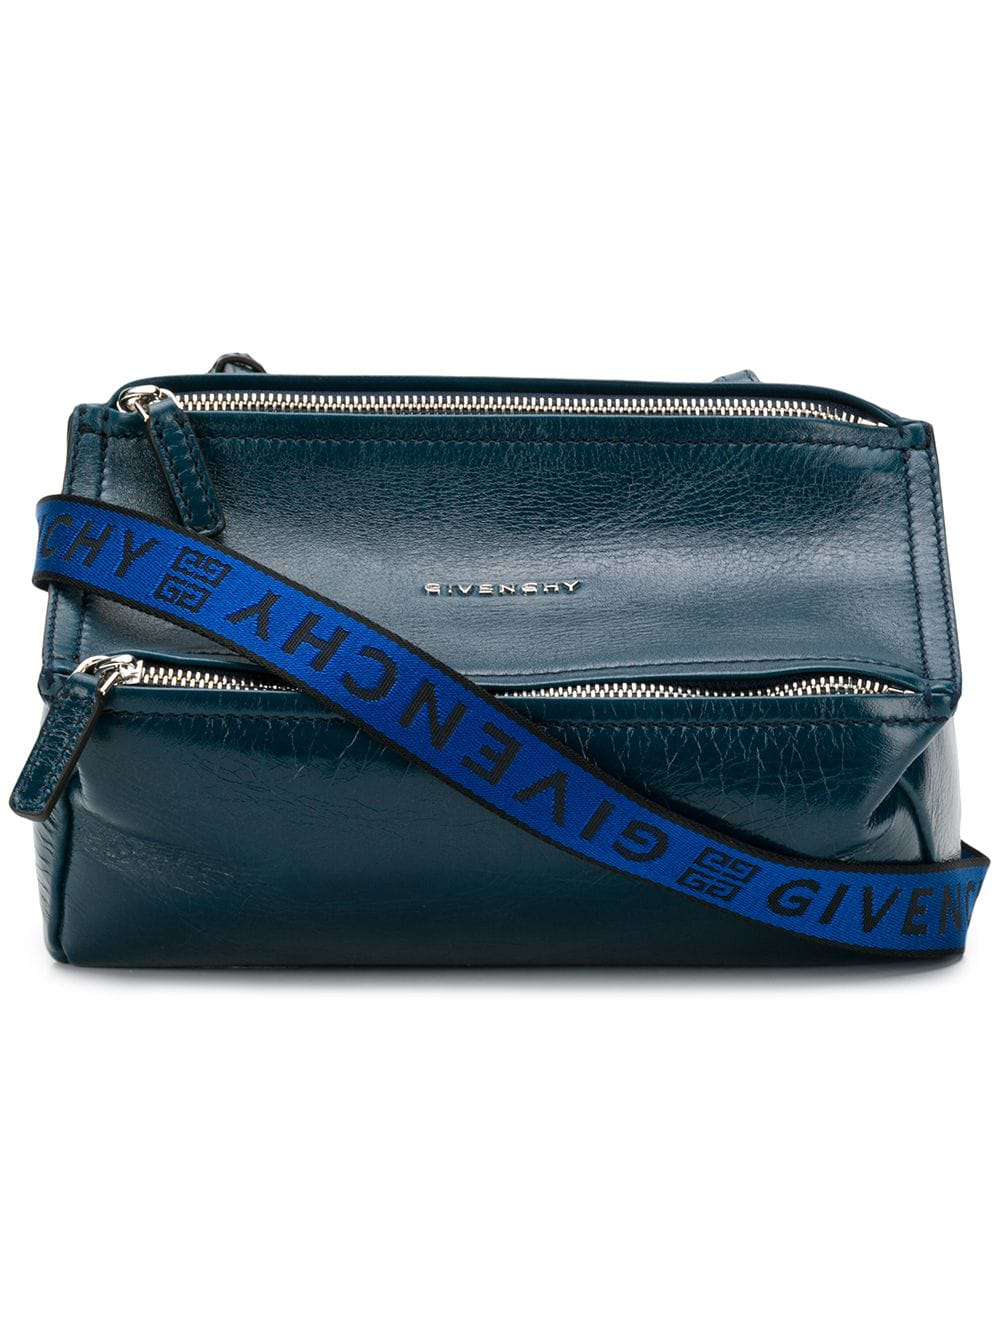 Givenchy Mini 'Pandora' UmhäNgetasche - Blau In Blue